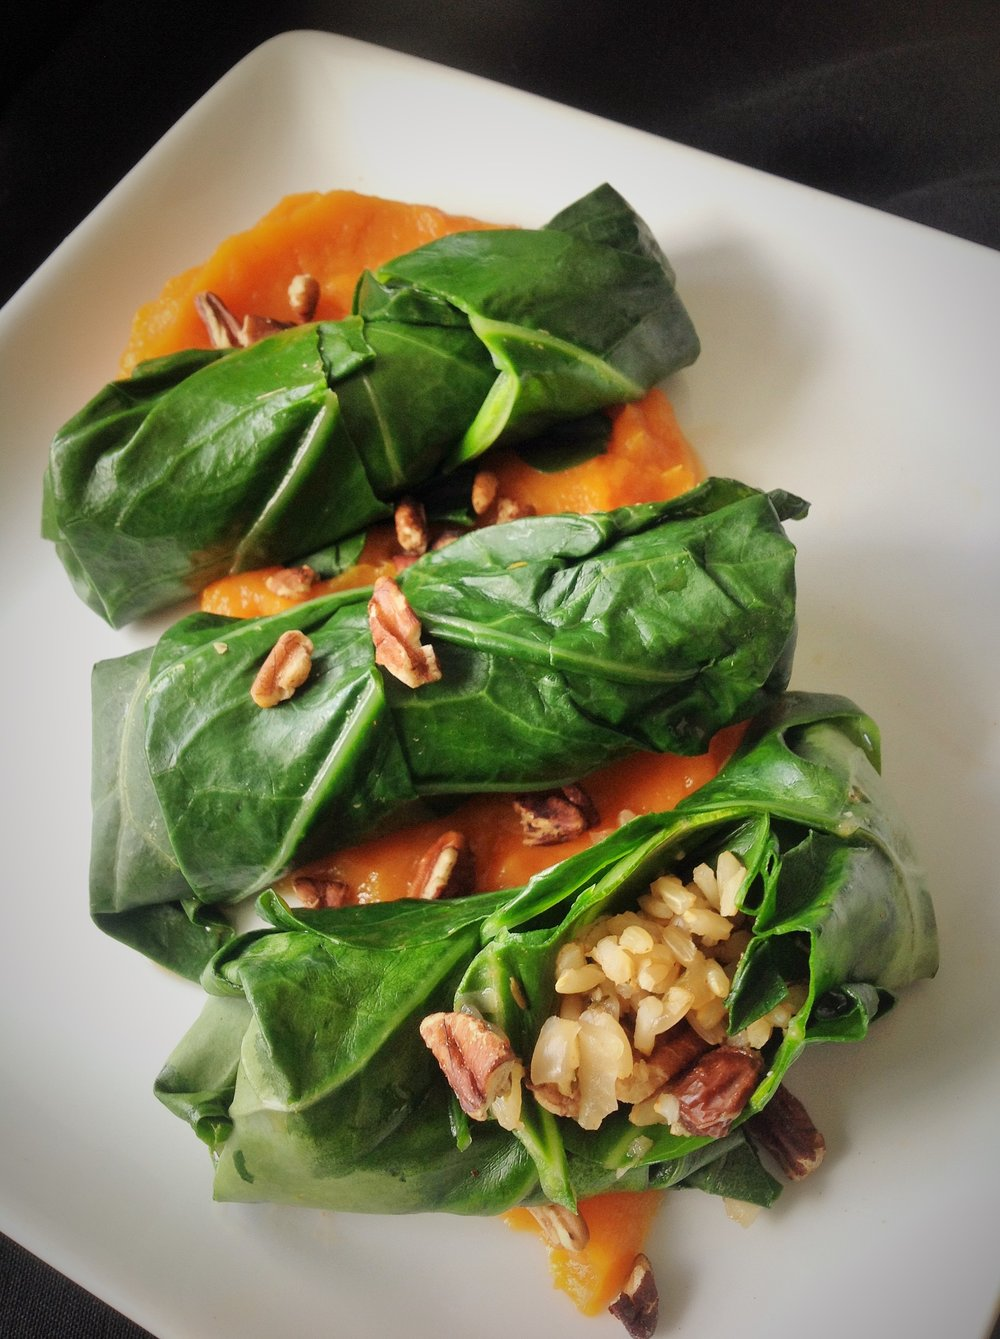 Southern Collard Dolmades with Smoky Sweet Potato Puree - Healthy, Plant-Based, Oil-Free, Gluten-Free Vegan Recipe